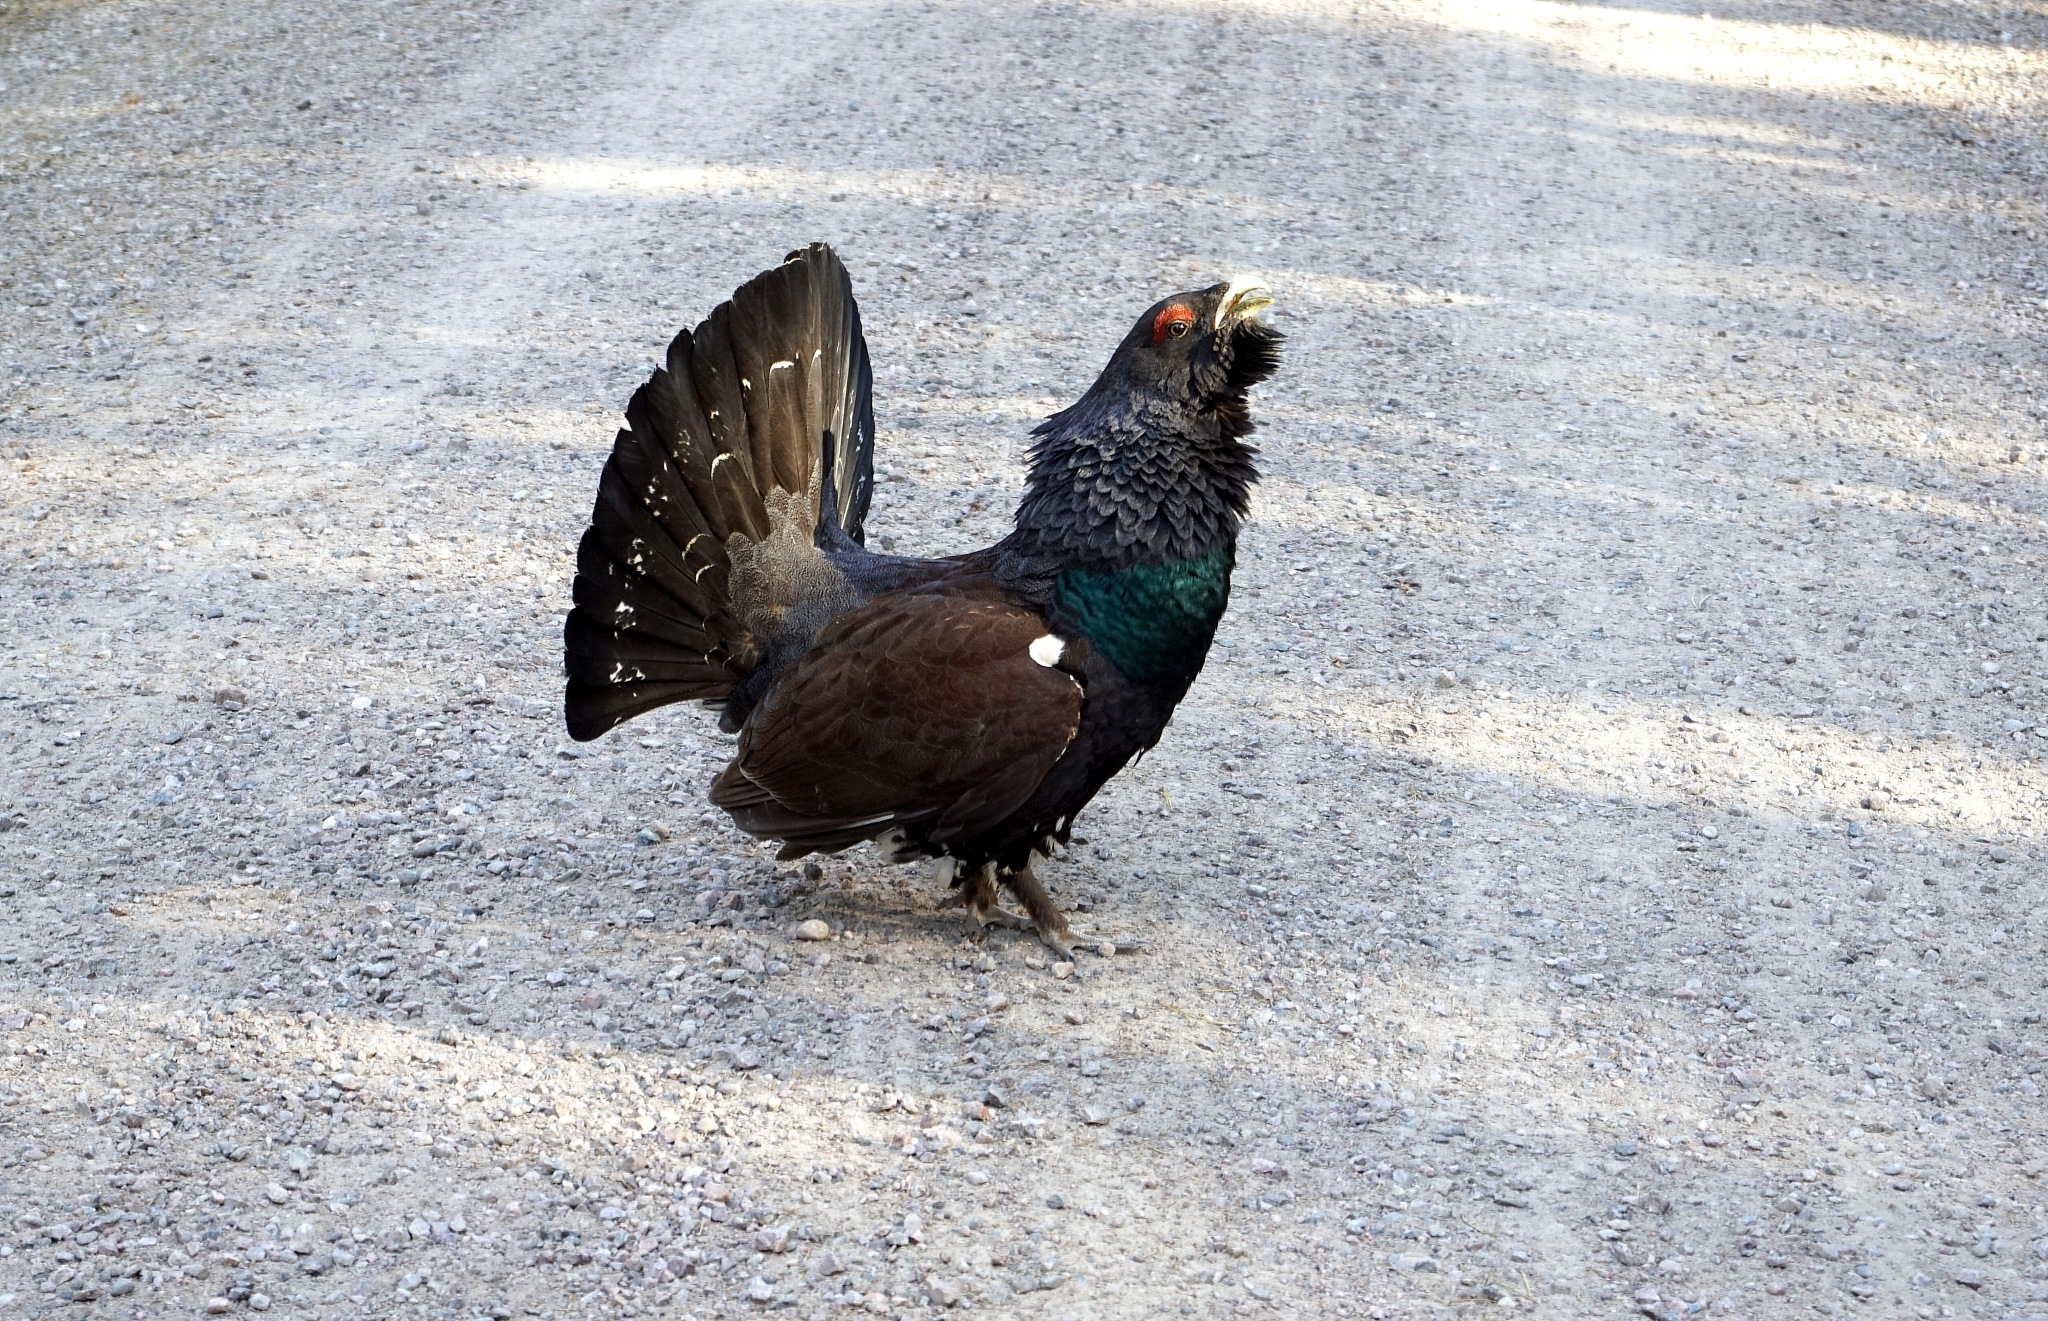 The capercaillie by susannemkarlsson